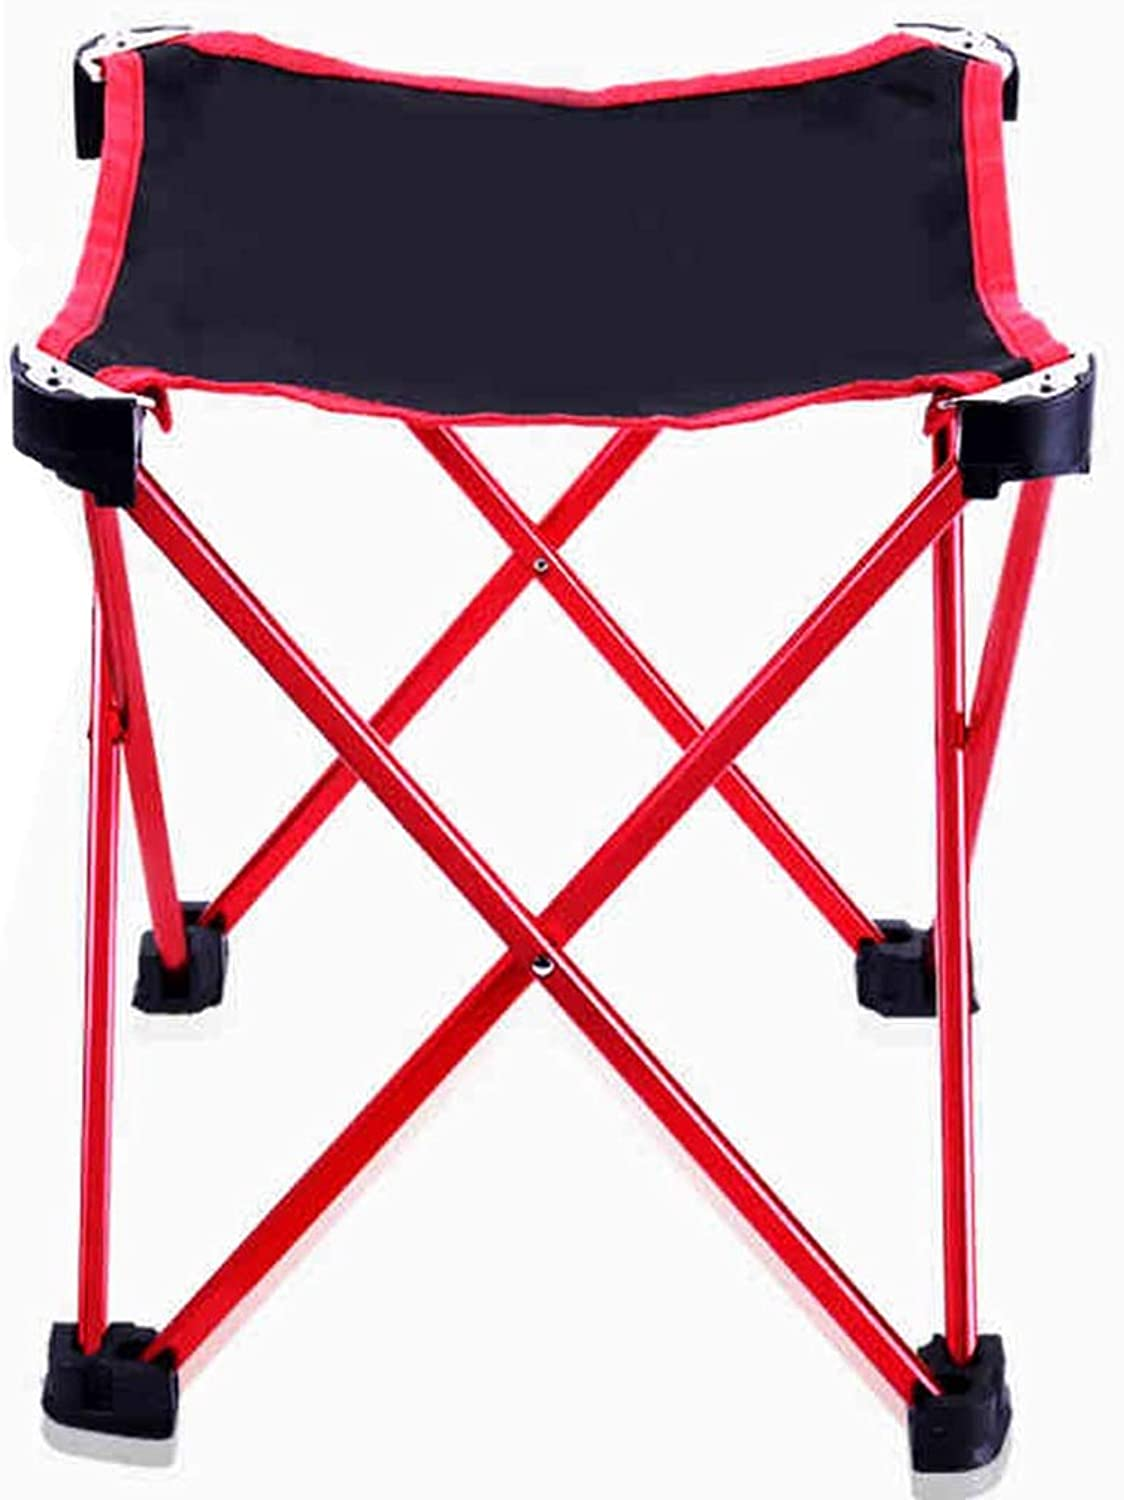 Fishing Chair Fishing Stool Portable Folding Outdoor Fishing Stool Multifunctional Lightweight Aluminum Travel Fishing Chair (color   Red, Size   19  18cm)